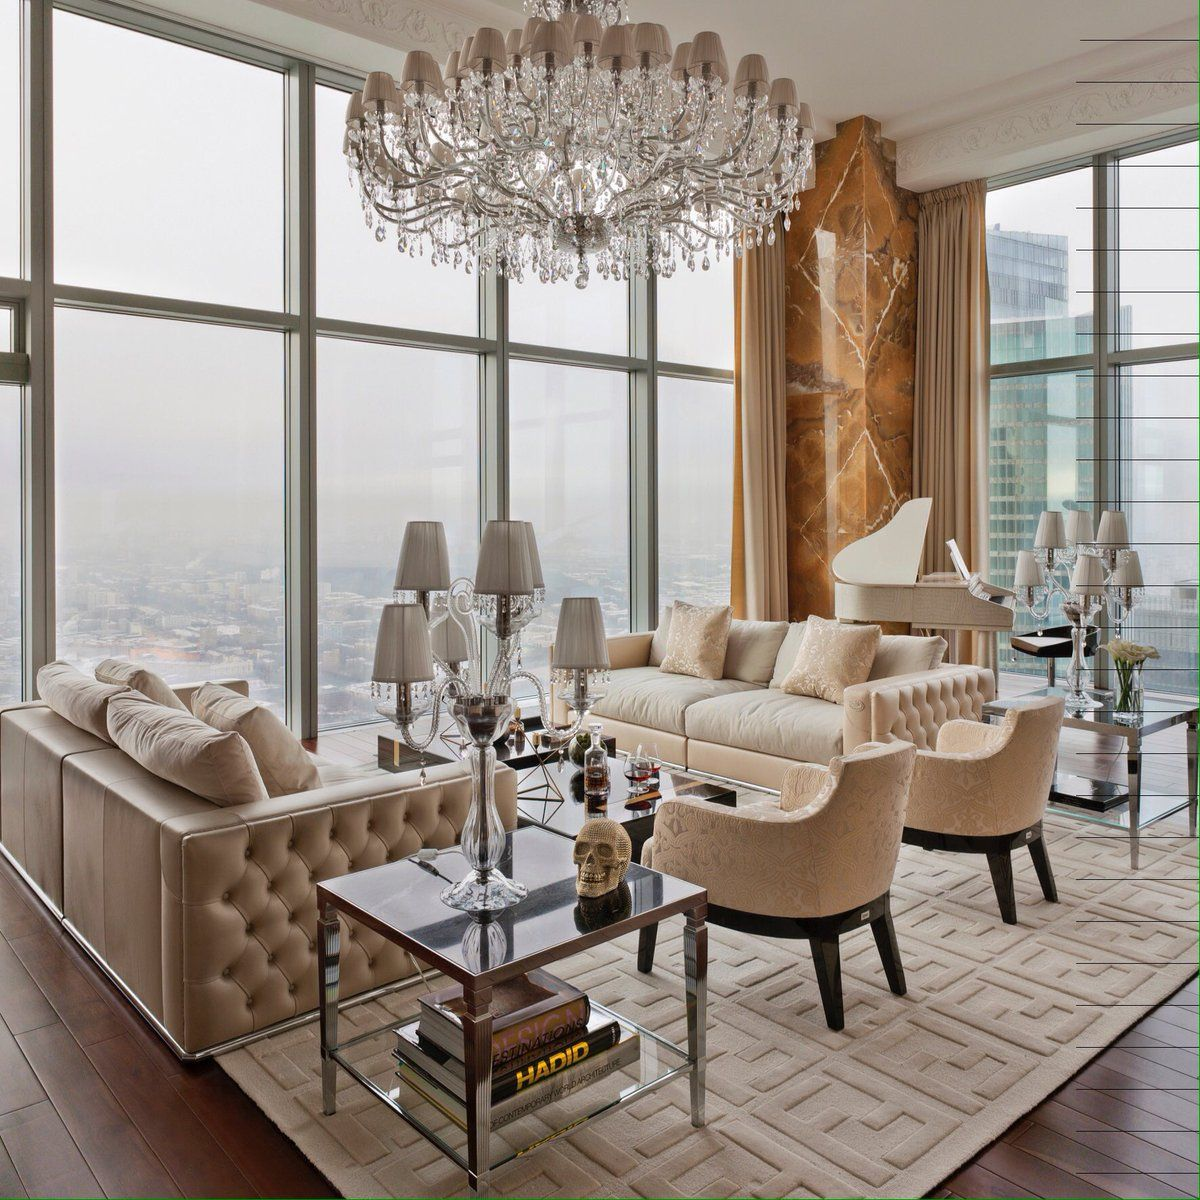 Chandeliers The most stylish interiors in